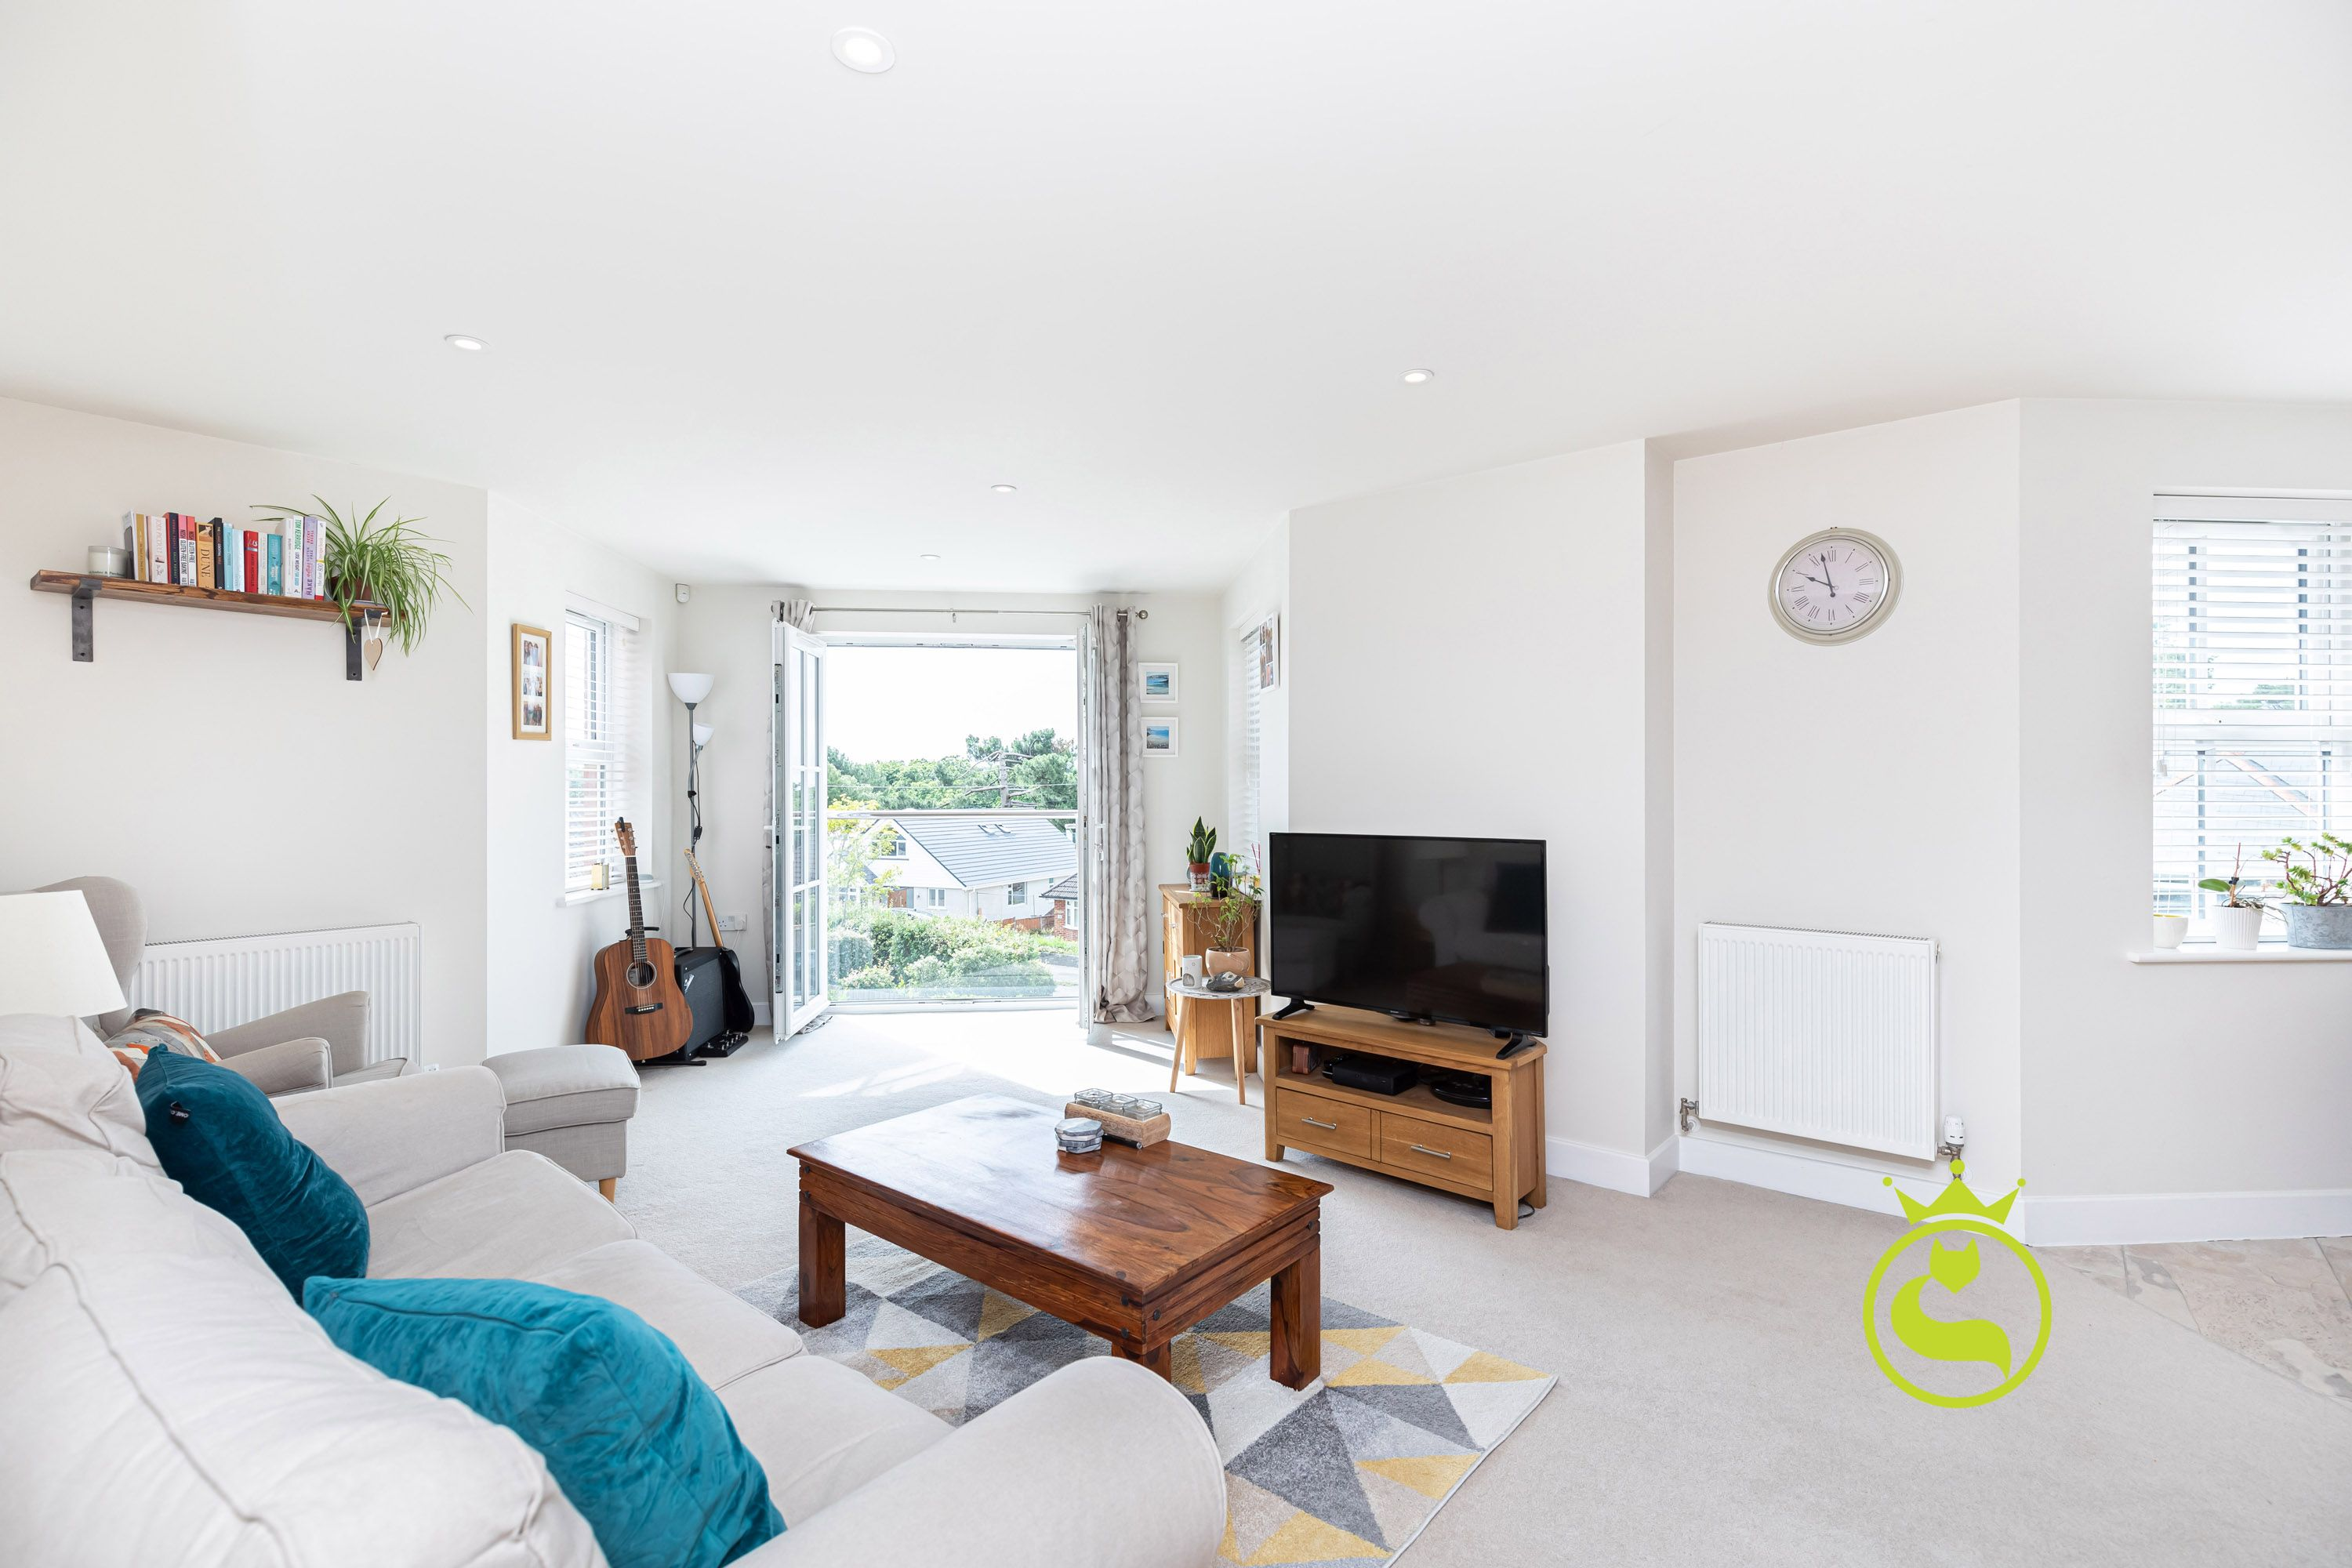 Don't miss out on this fantastic two bedroom two bathroom apartment located in BH14!